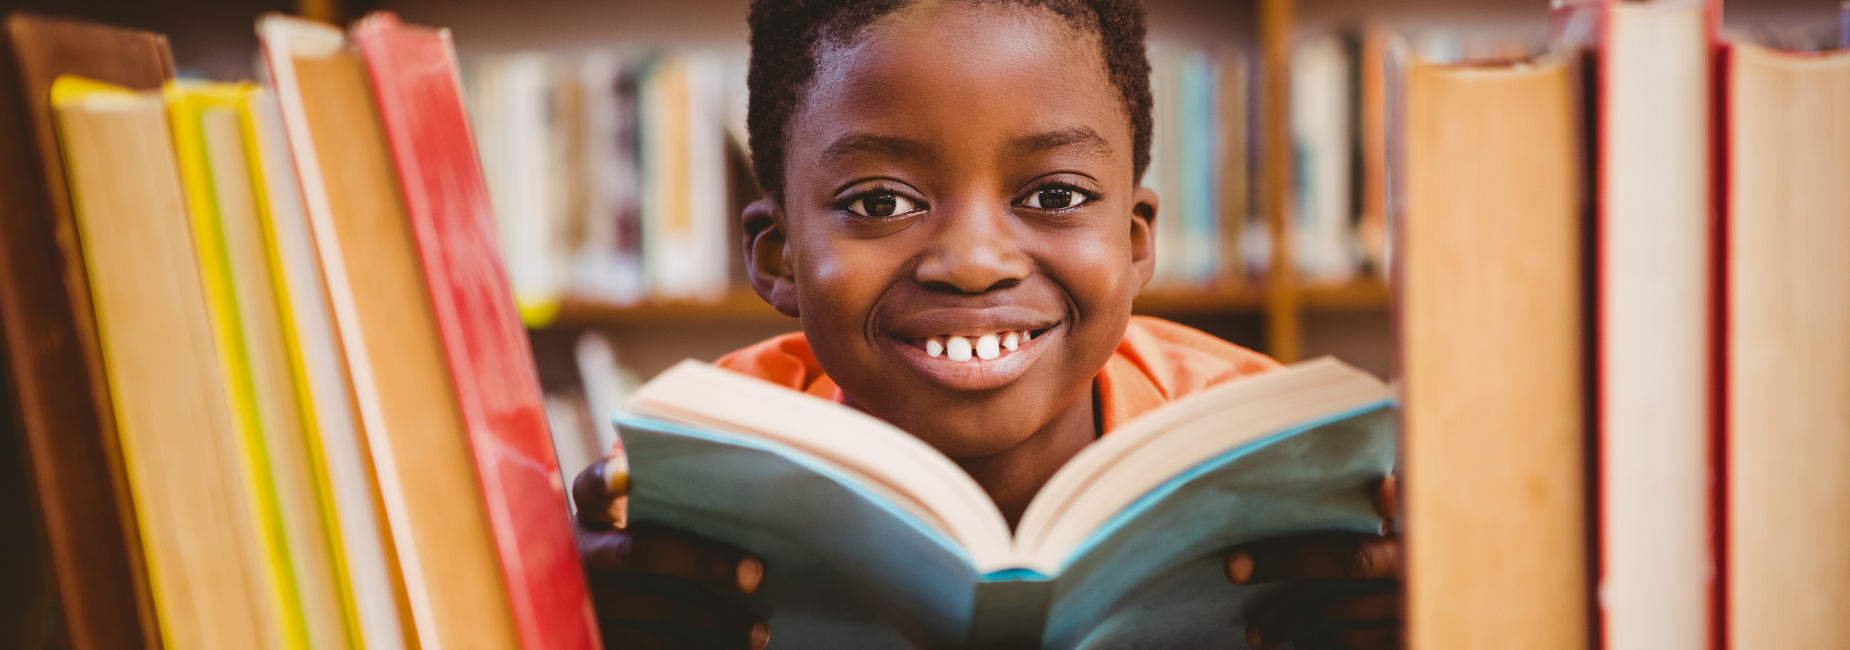 young boy surrounded by books